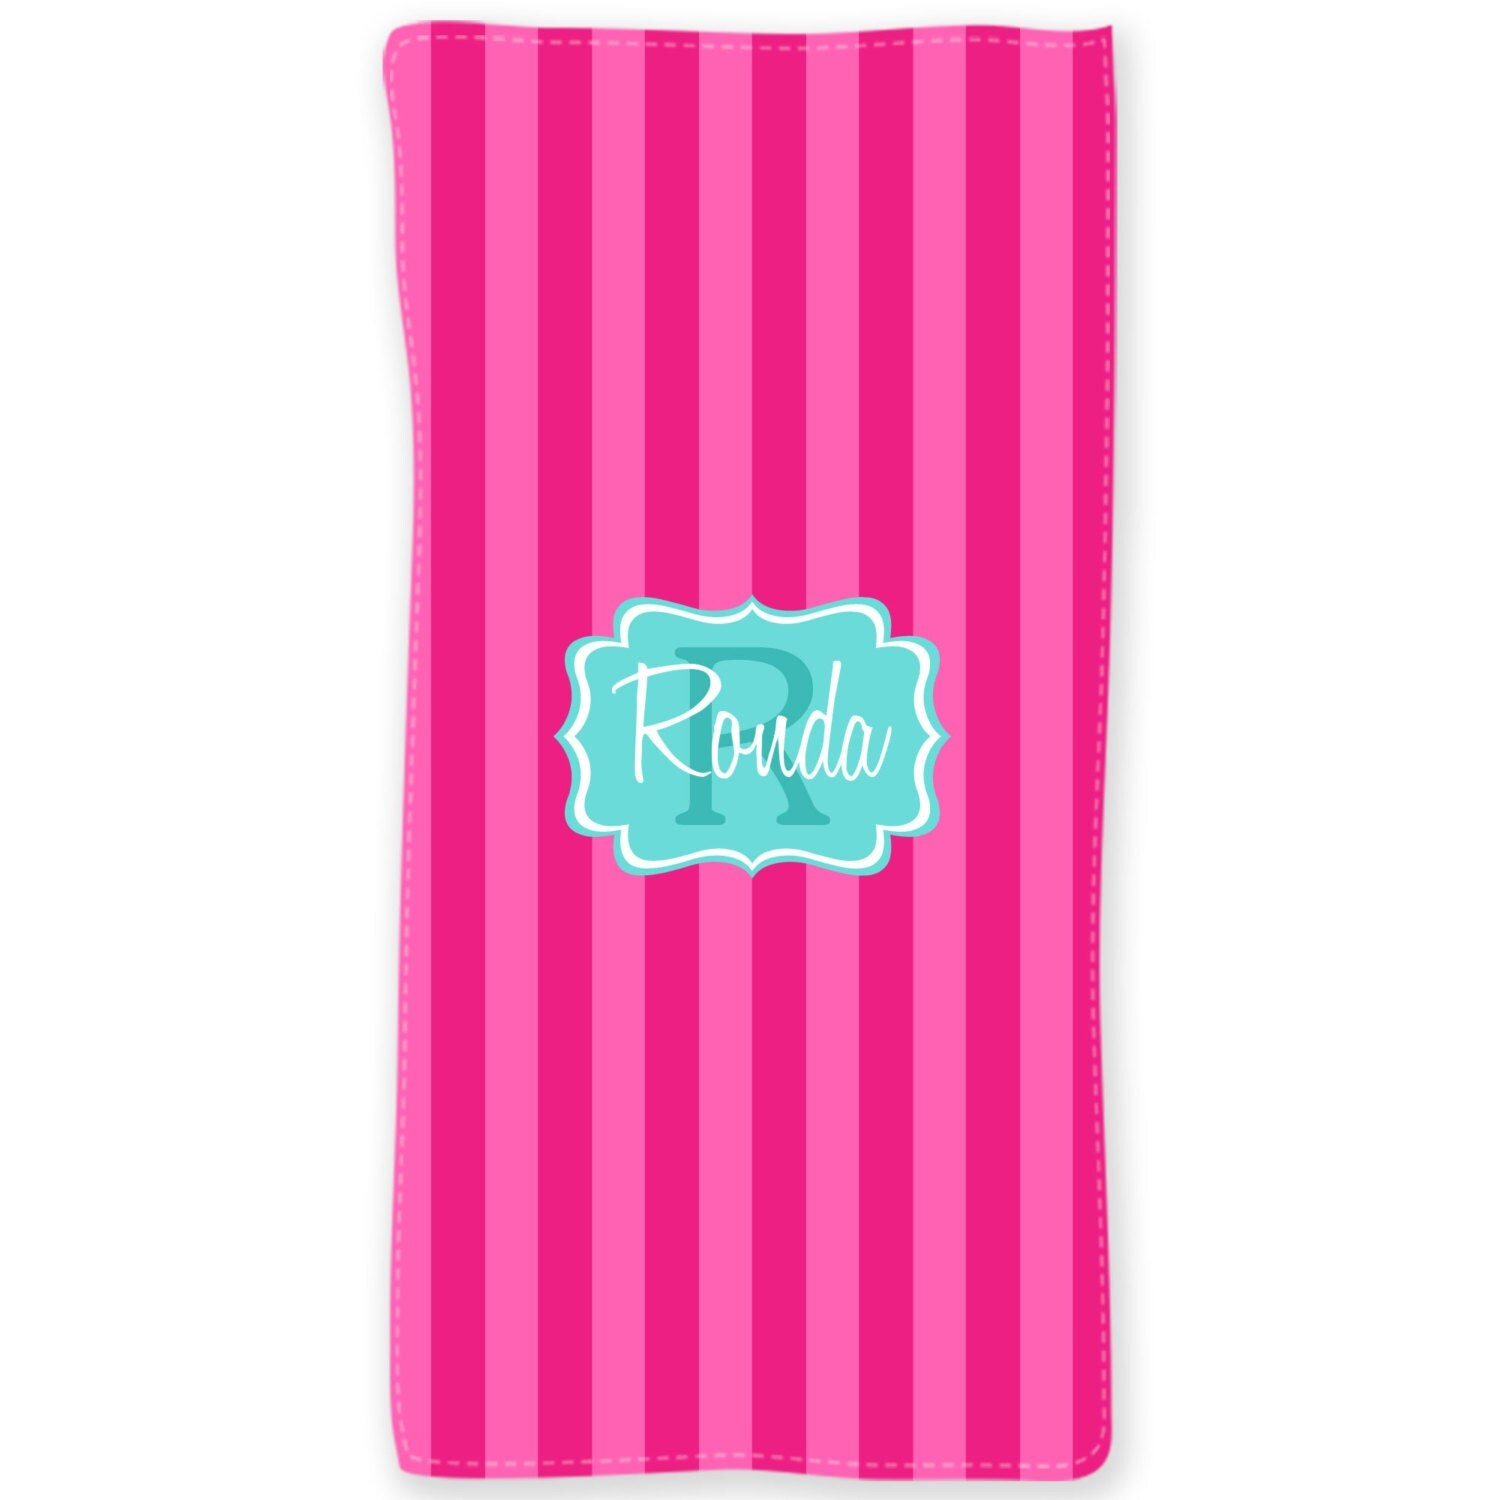 Cabana Stripes Personalized Beach Towels Custom Monogrammed